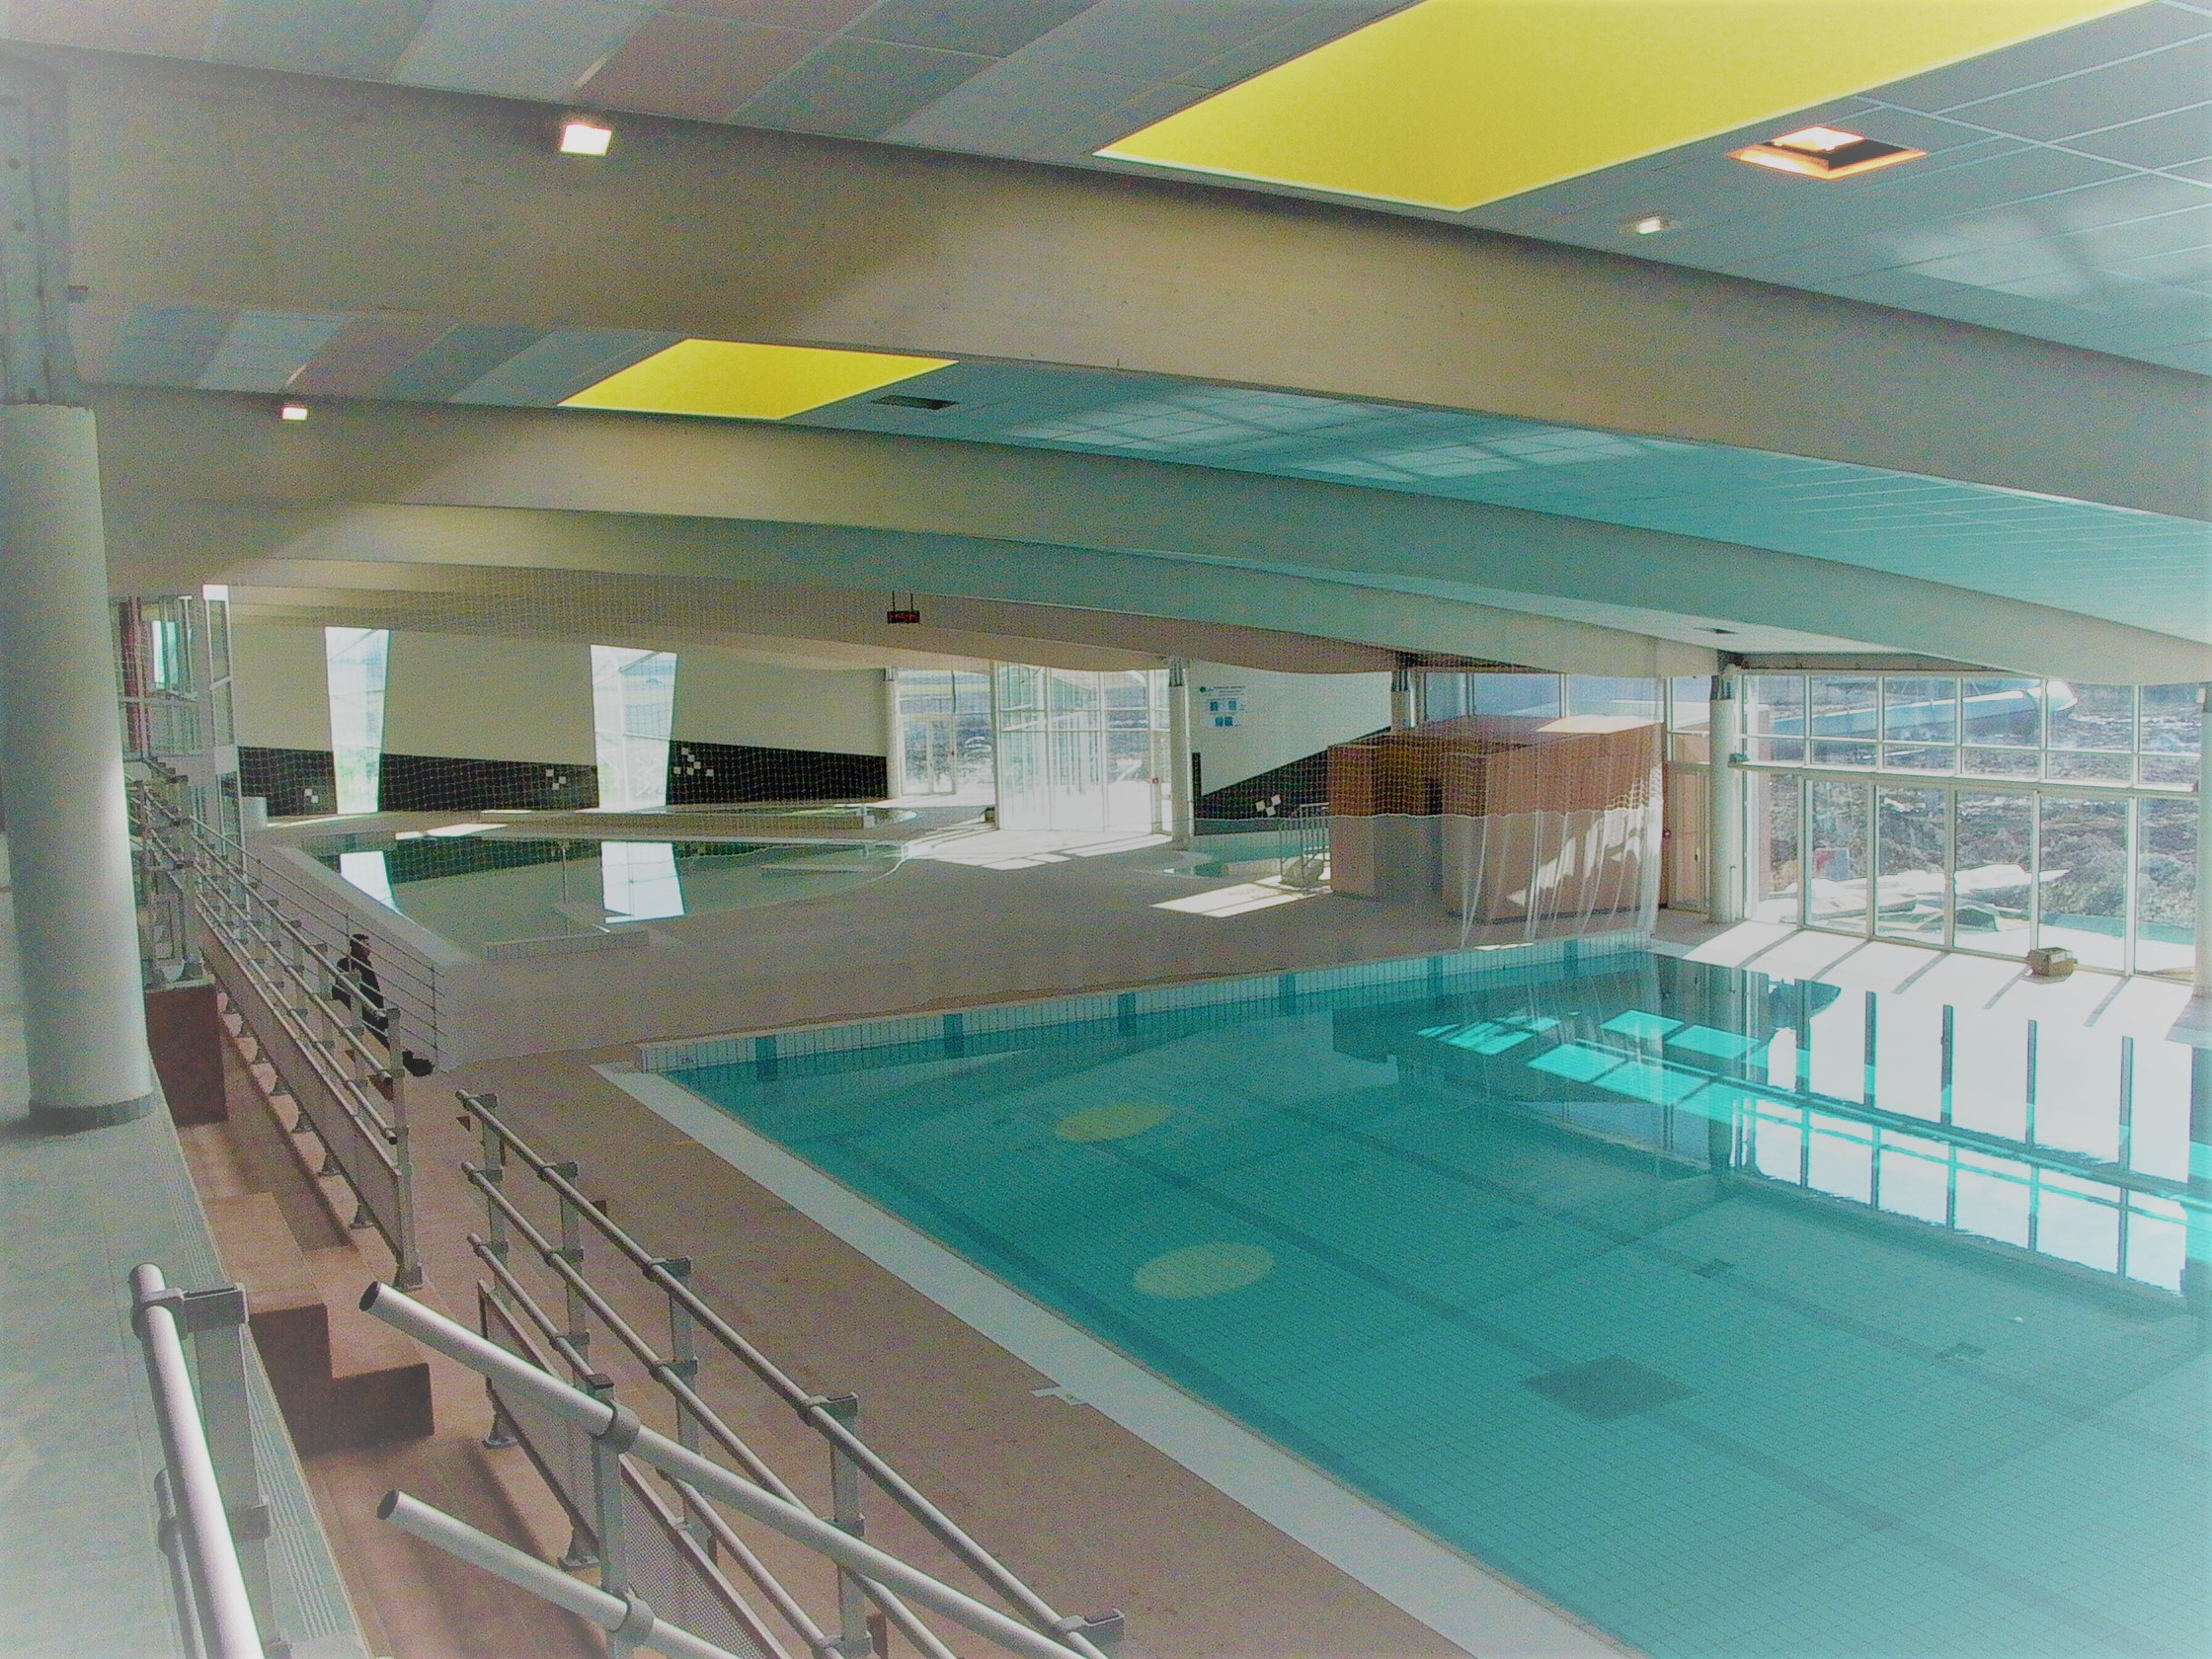 piscine patinoire de laon 02 serial acoustique